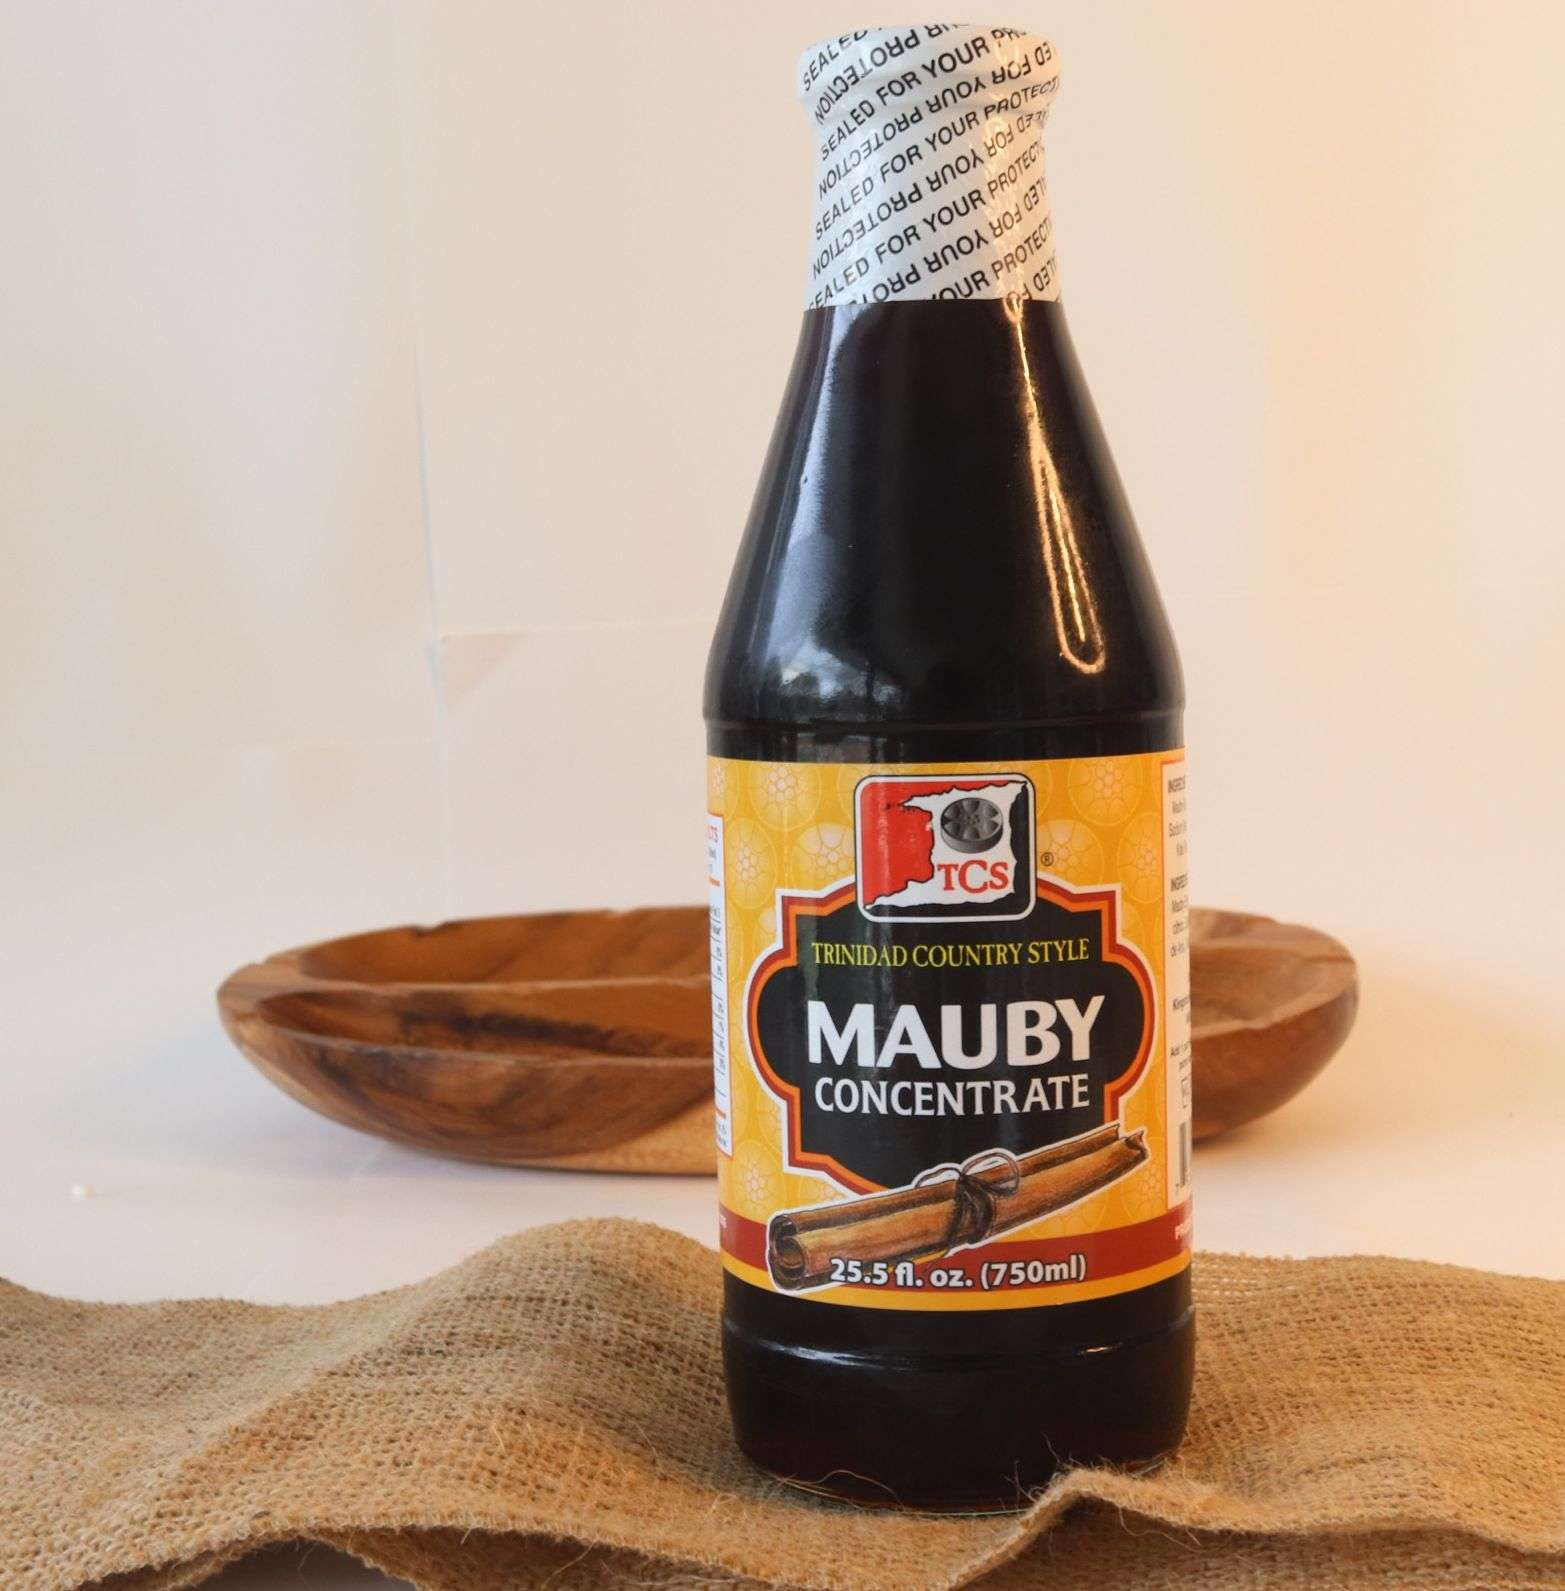 Trinidad Country Style Mauby Concentrate